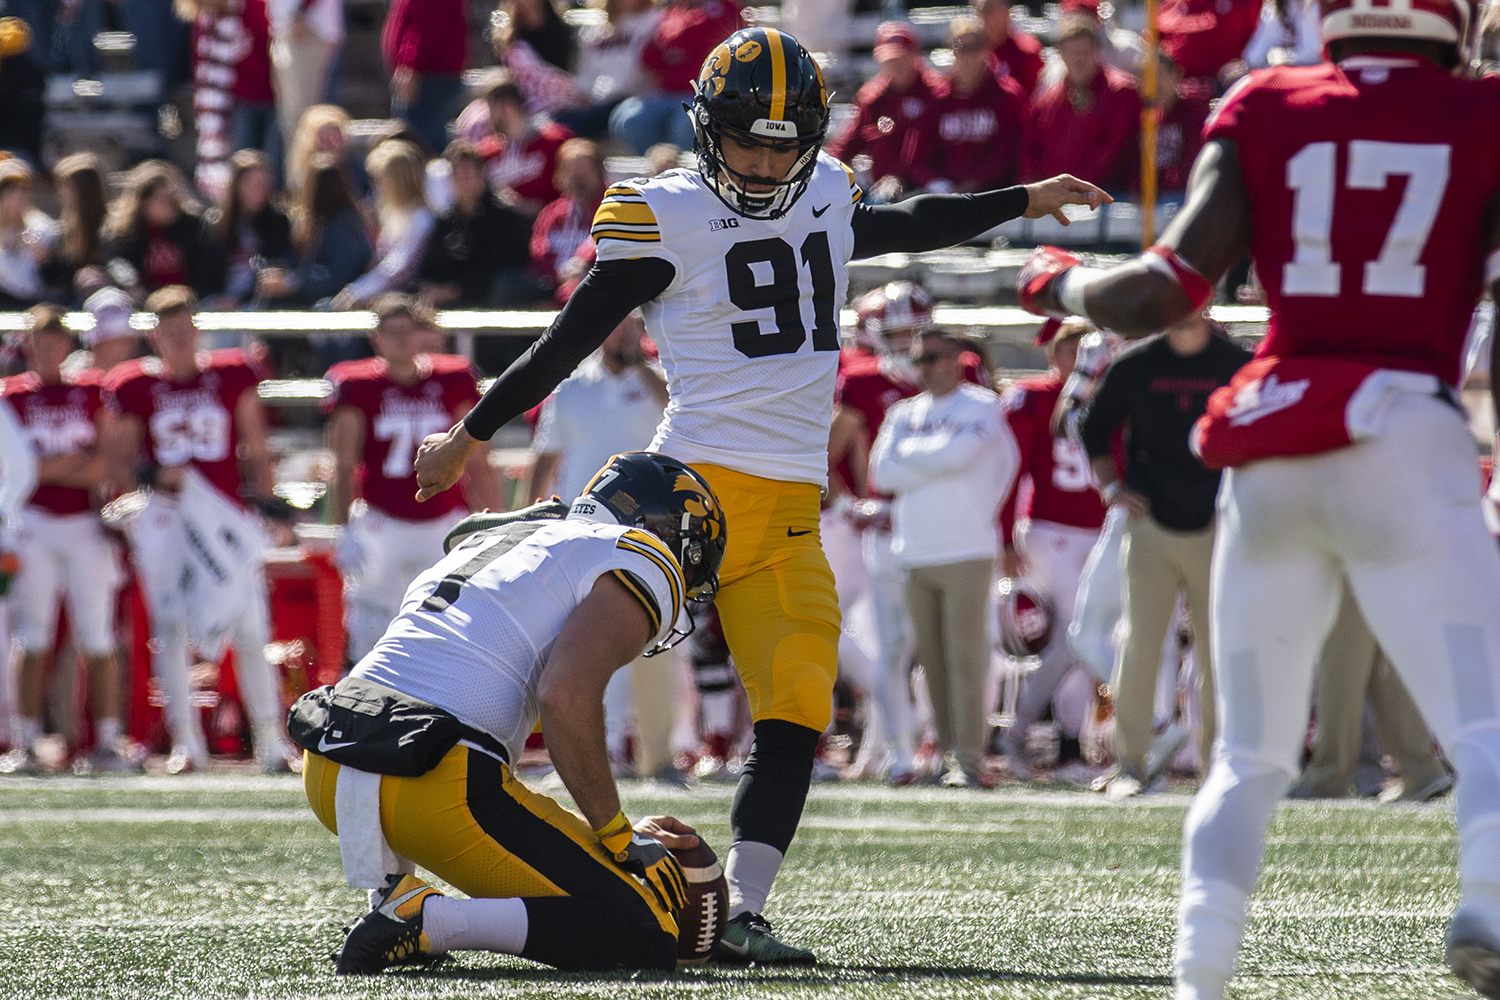 Iowa kicker Miguel Recinos kicks the ball during Iowa's game at Indiana at Memorial Stadium in Bloomington on Saturday, Oct. 13, 2018. The Hawkeyes beat the Hoosiers 42-16.